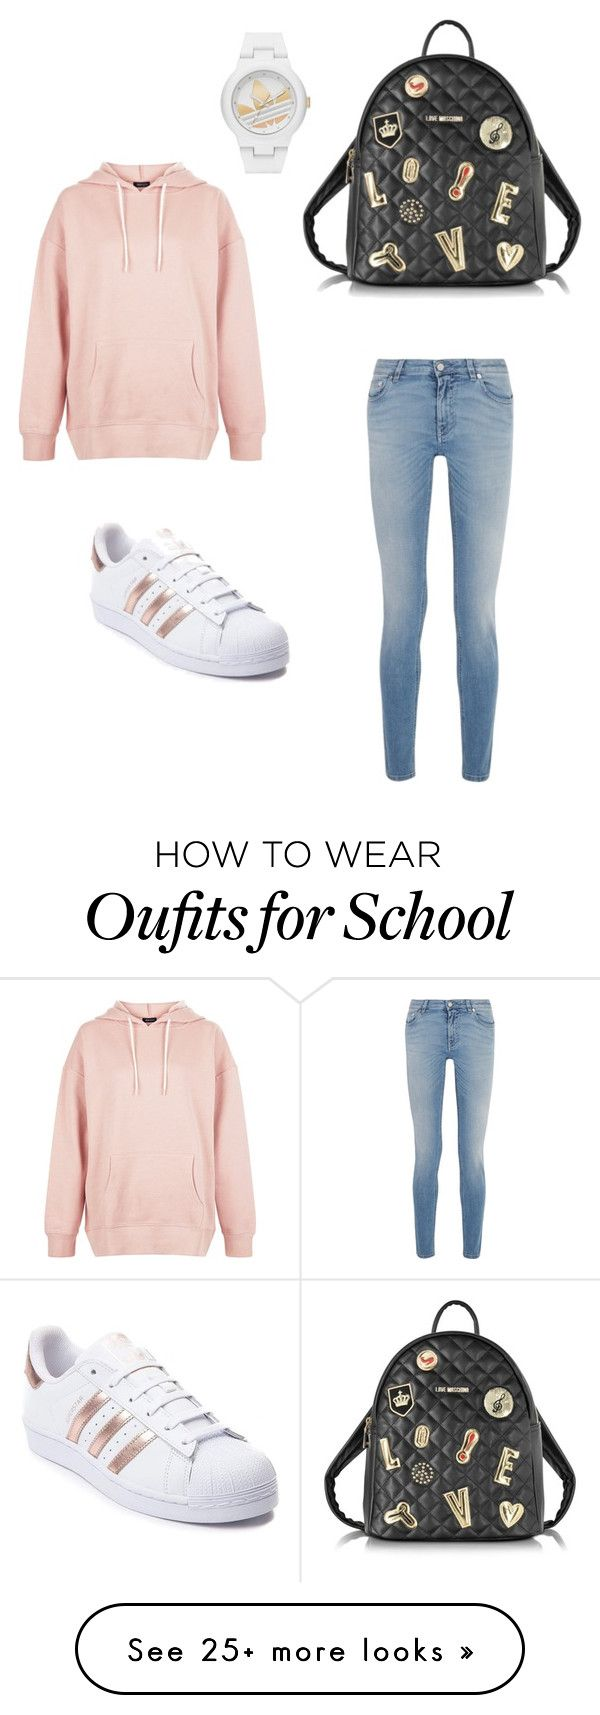 """Casual School Day"" by smsdancer2091 on Polyvore featuring New Look, Love Moschino, adidas and Givenchy"